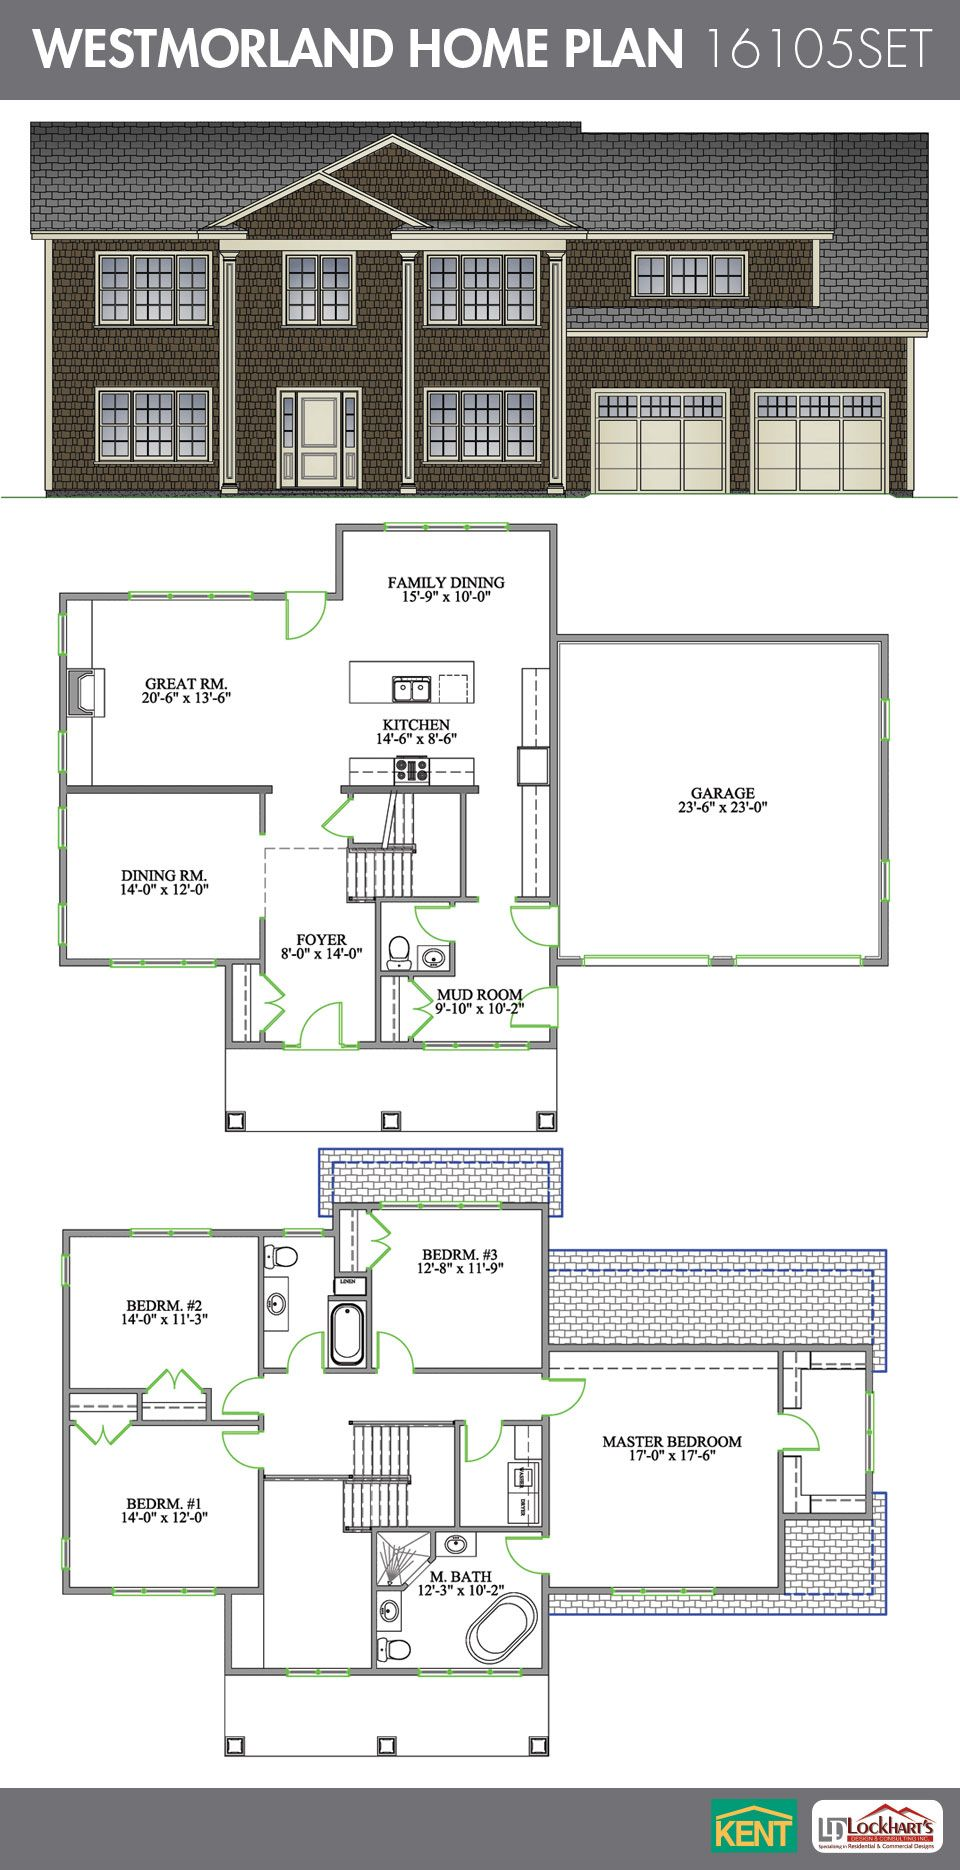 Westmorland 4 bedroom 2 1 2 bathroom home plan features for House plans with big kitchens and hearth rooms